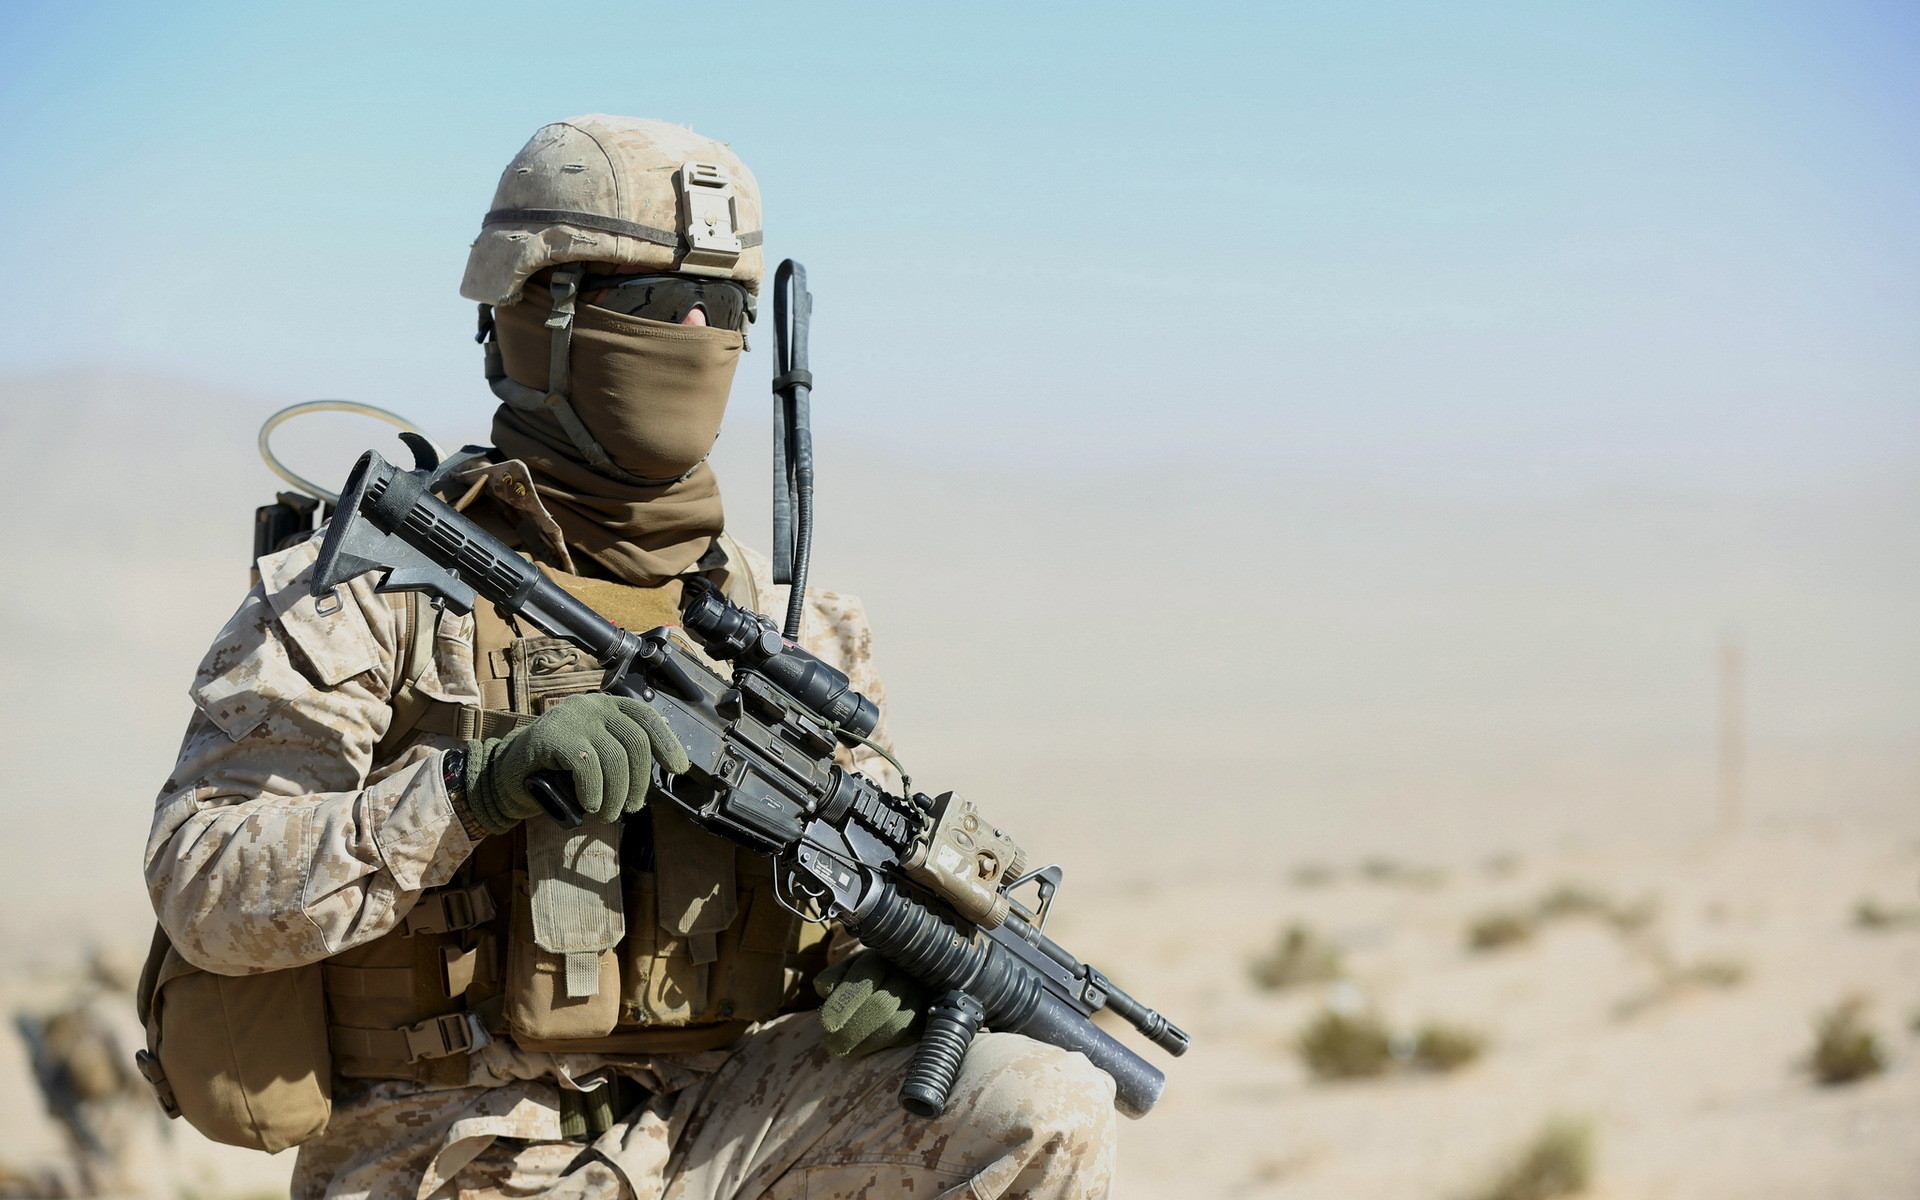 Wallpaper united states marine corps, military, regiment wallpapers .